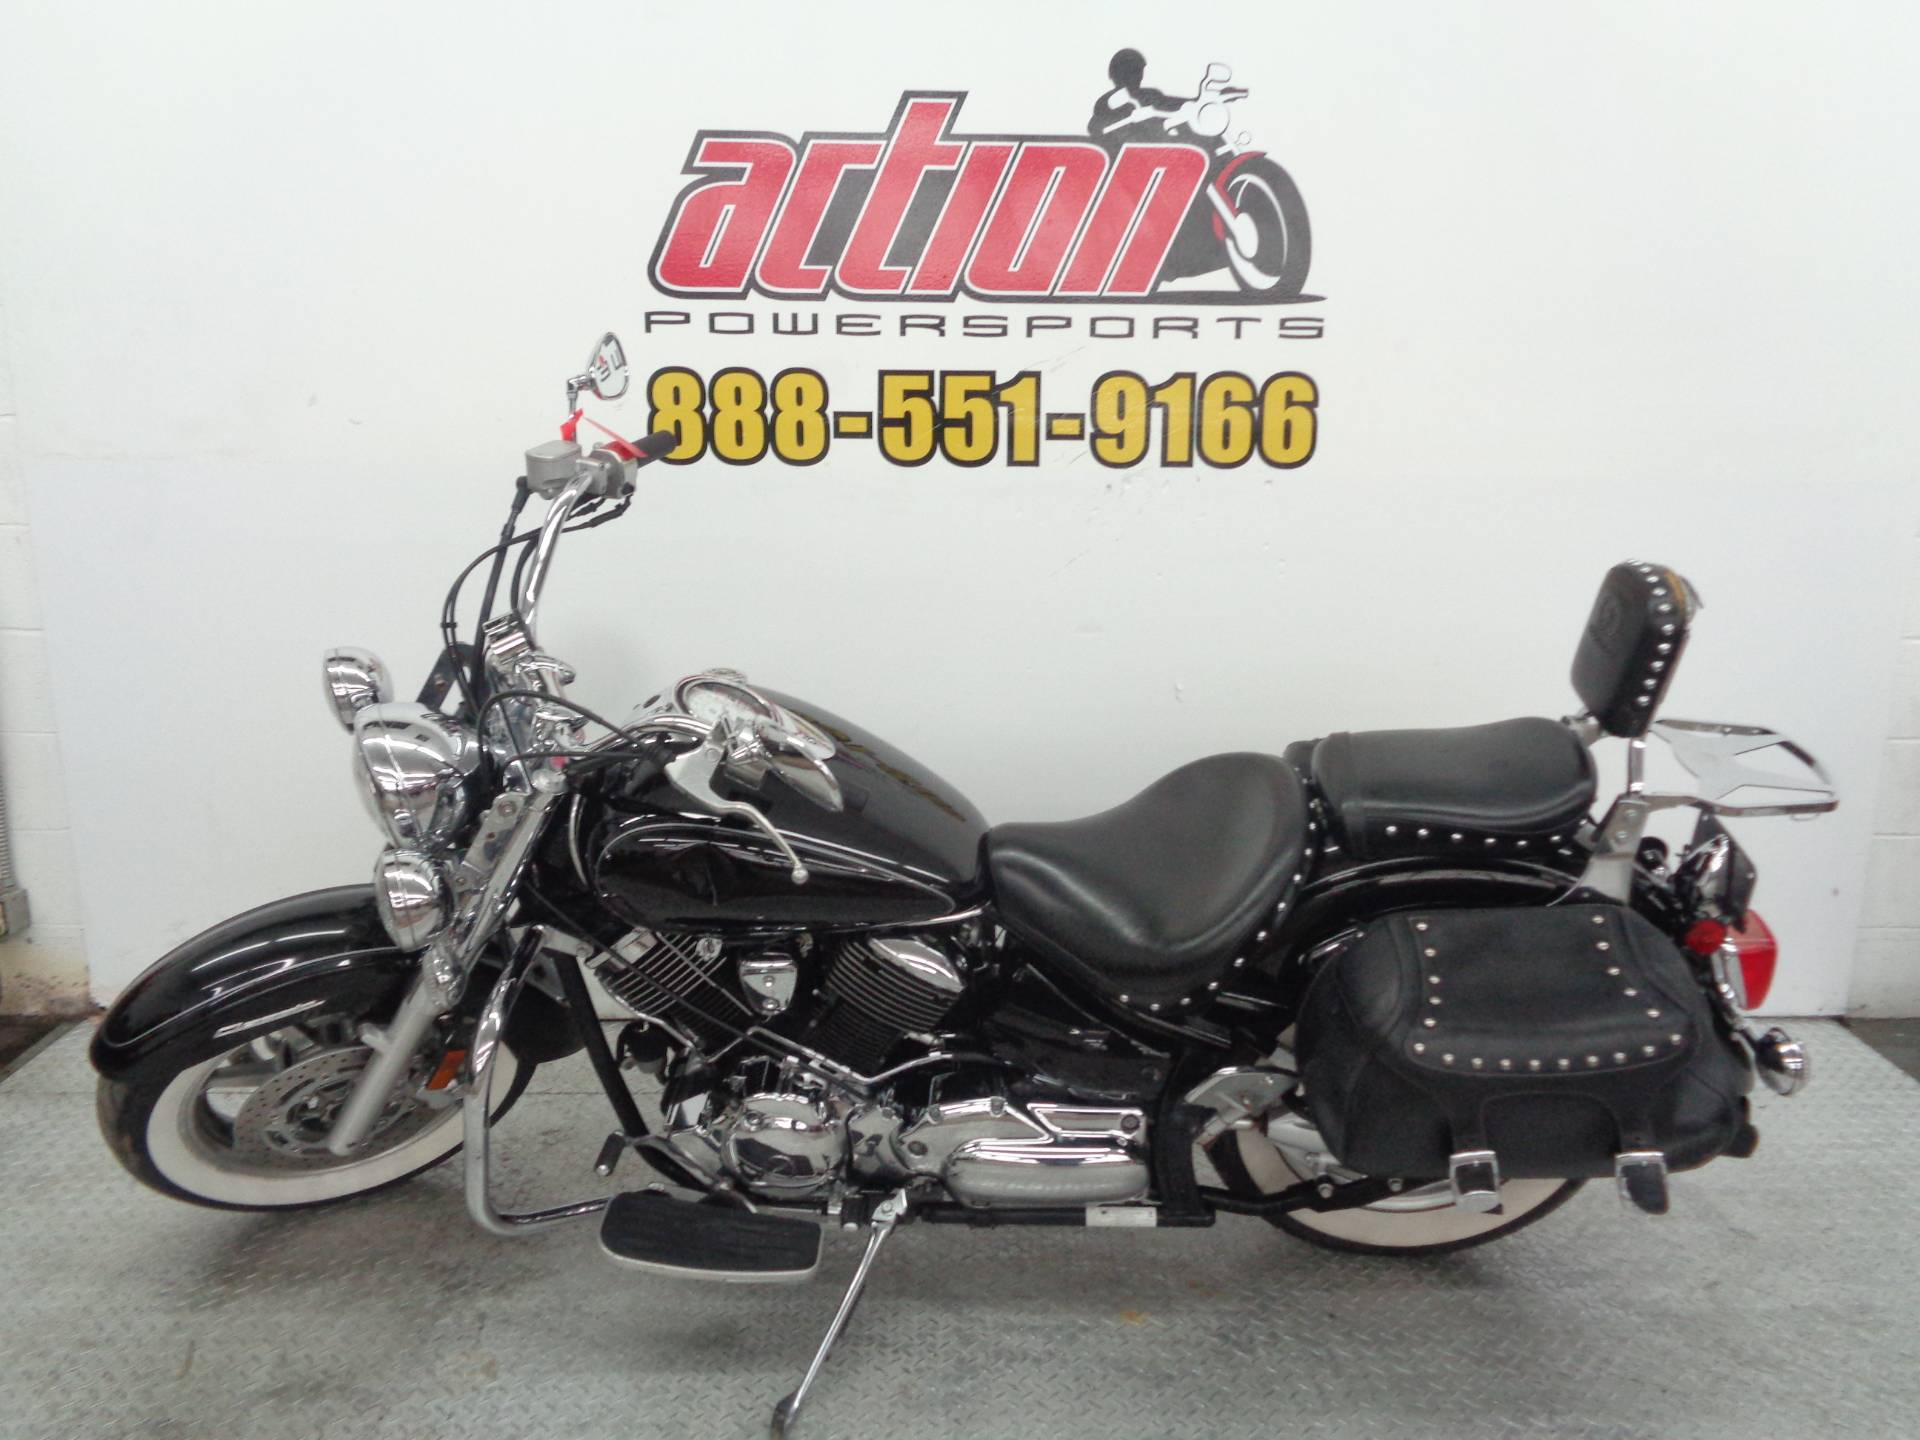 2008 Yamaha V Star® 1100 Silverado® in Tulsa, Oklahoma - Photo 2